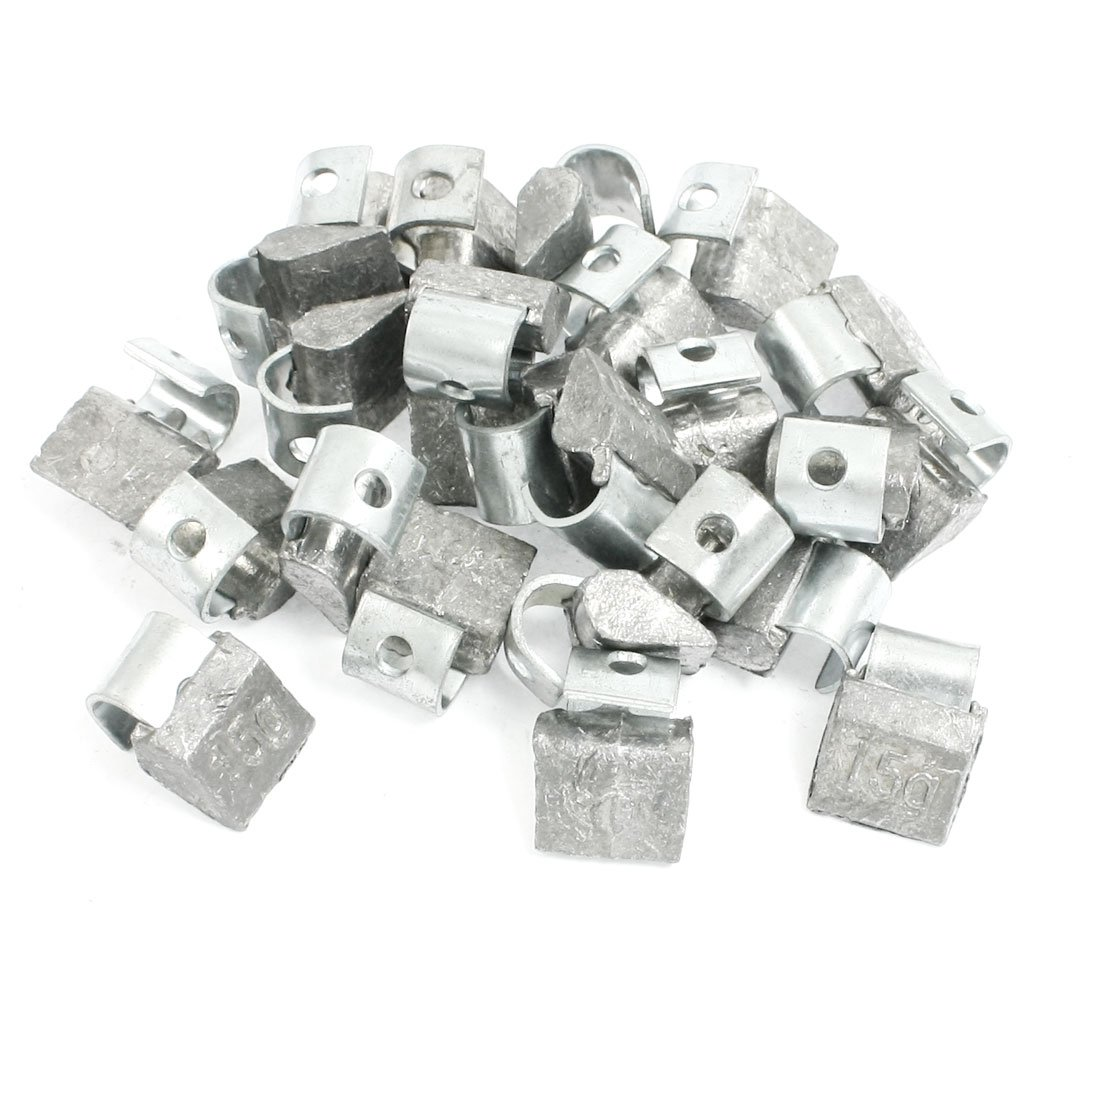 uxcell Motorcycle Car Clip Tyre Tire Wheel Balancing Weights 15 Gram 20 Pcs